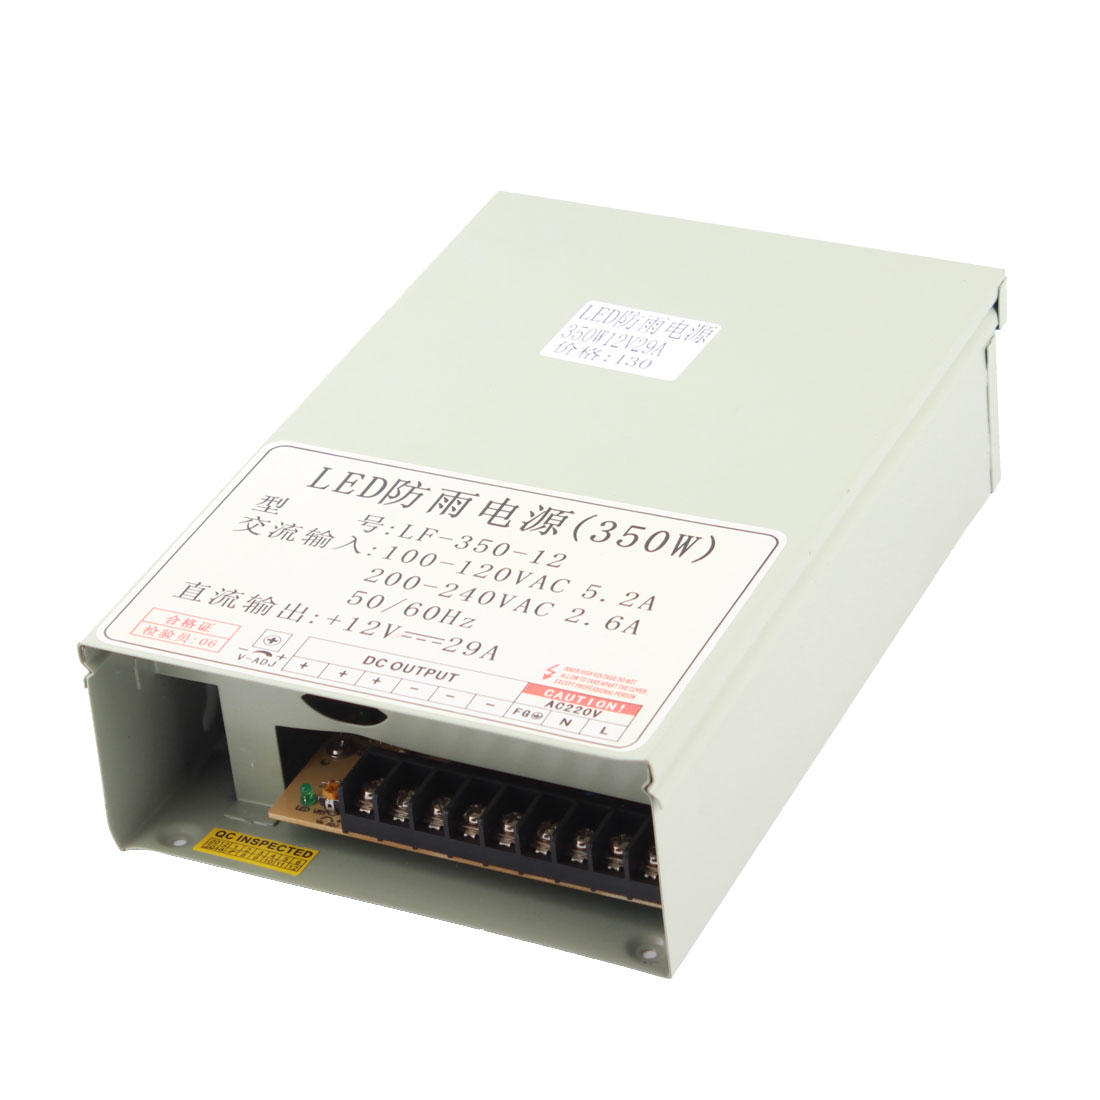 AC 100-120V to DC 12V 29A 350W Switching Power Supply for LED Strip Light